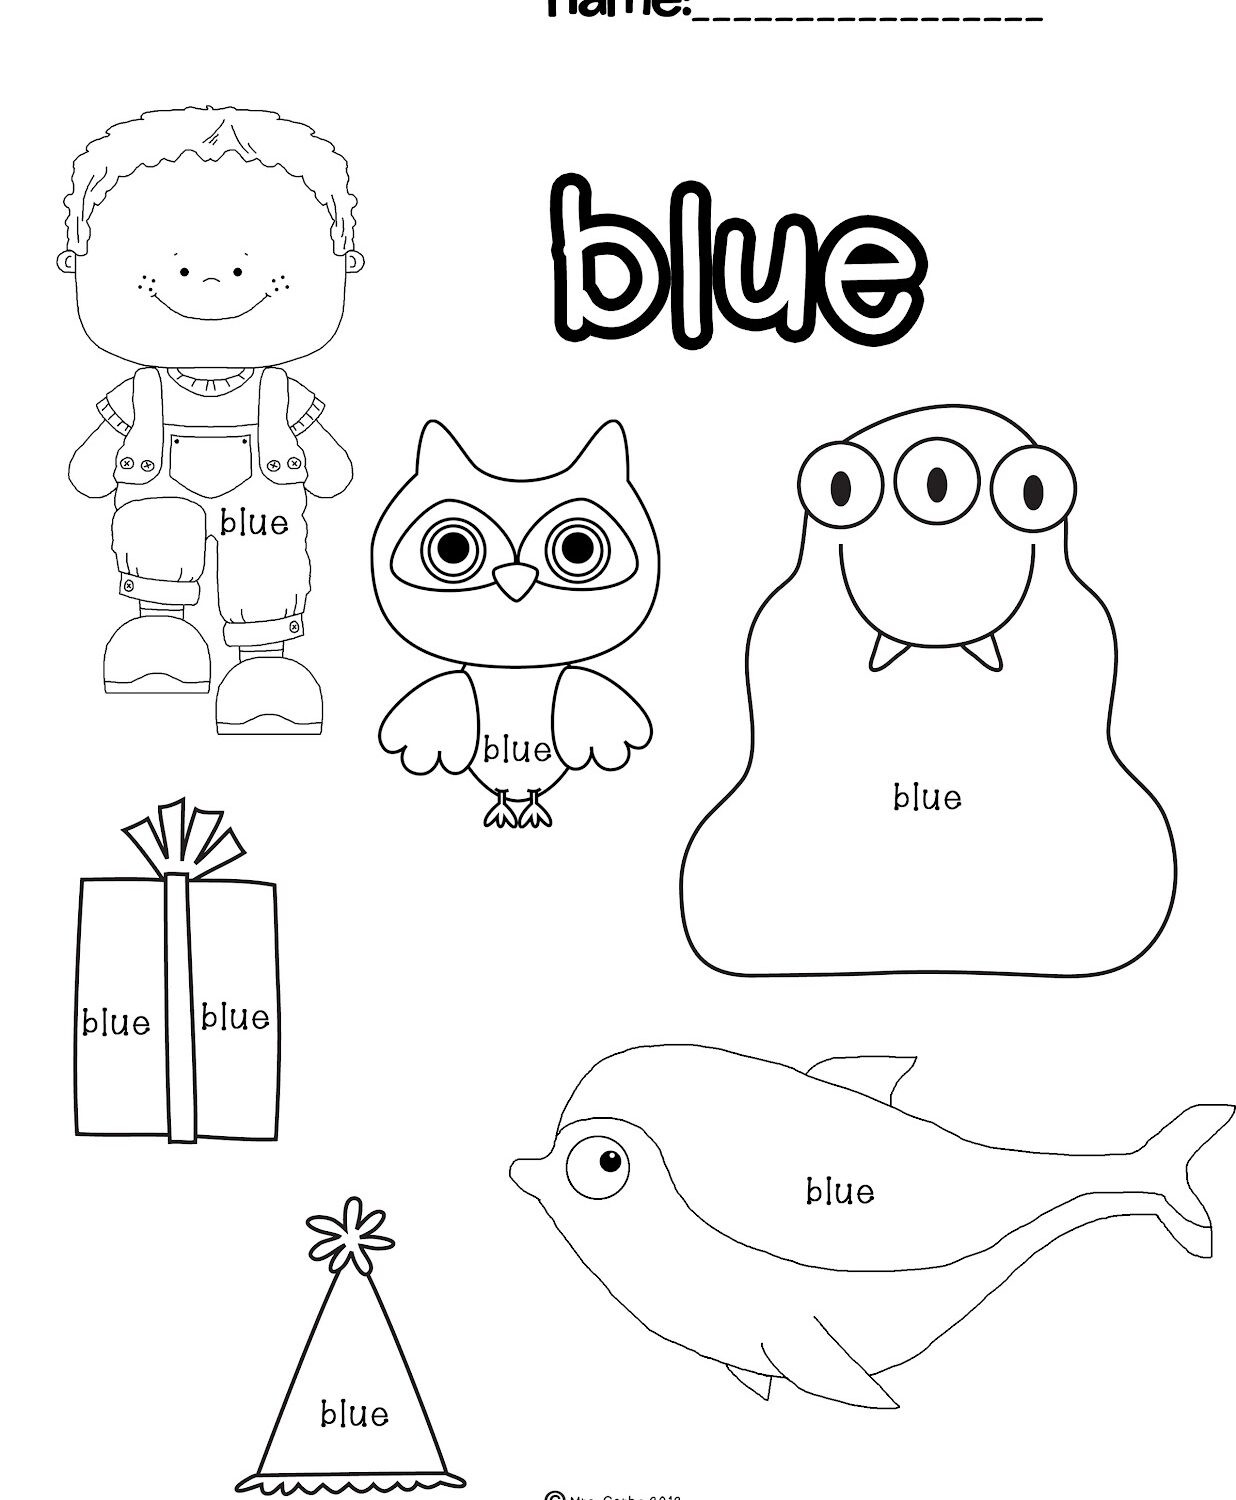 Color Blue Worksheets for Preschool Color Blue Worksheets for Preschool Worksheet Teaching Kids